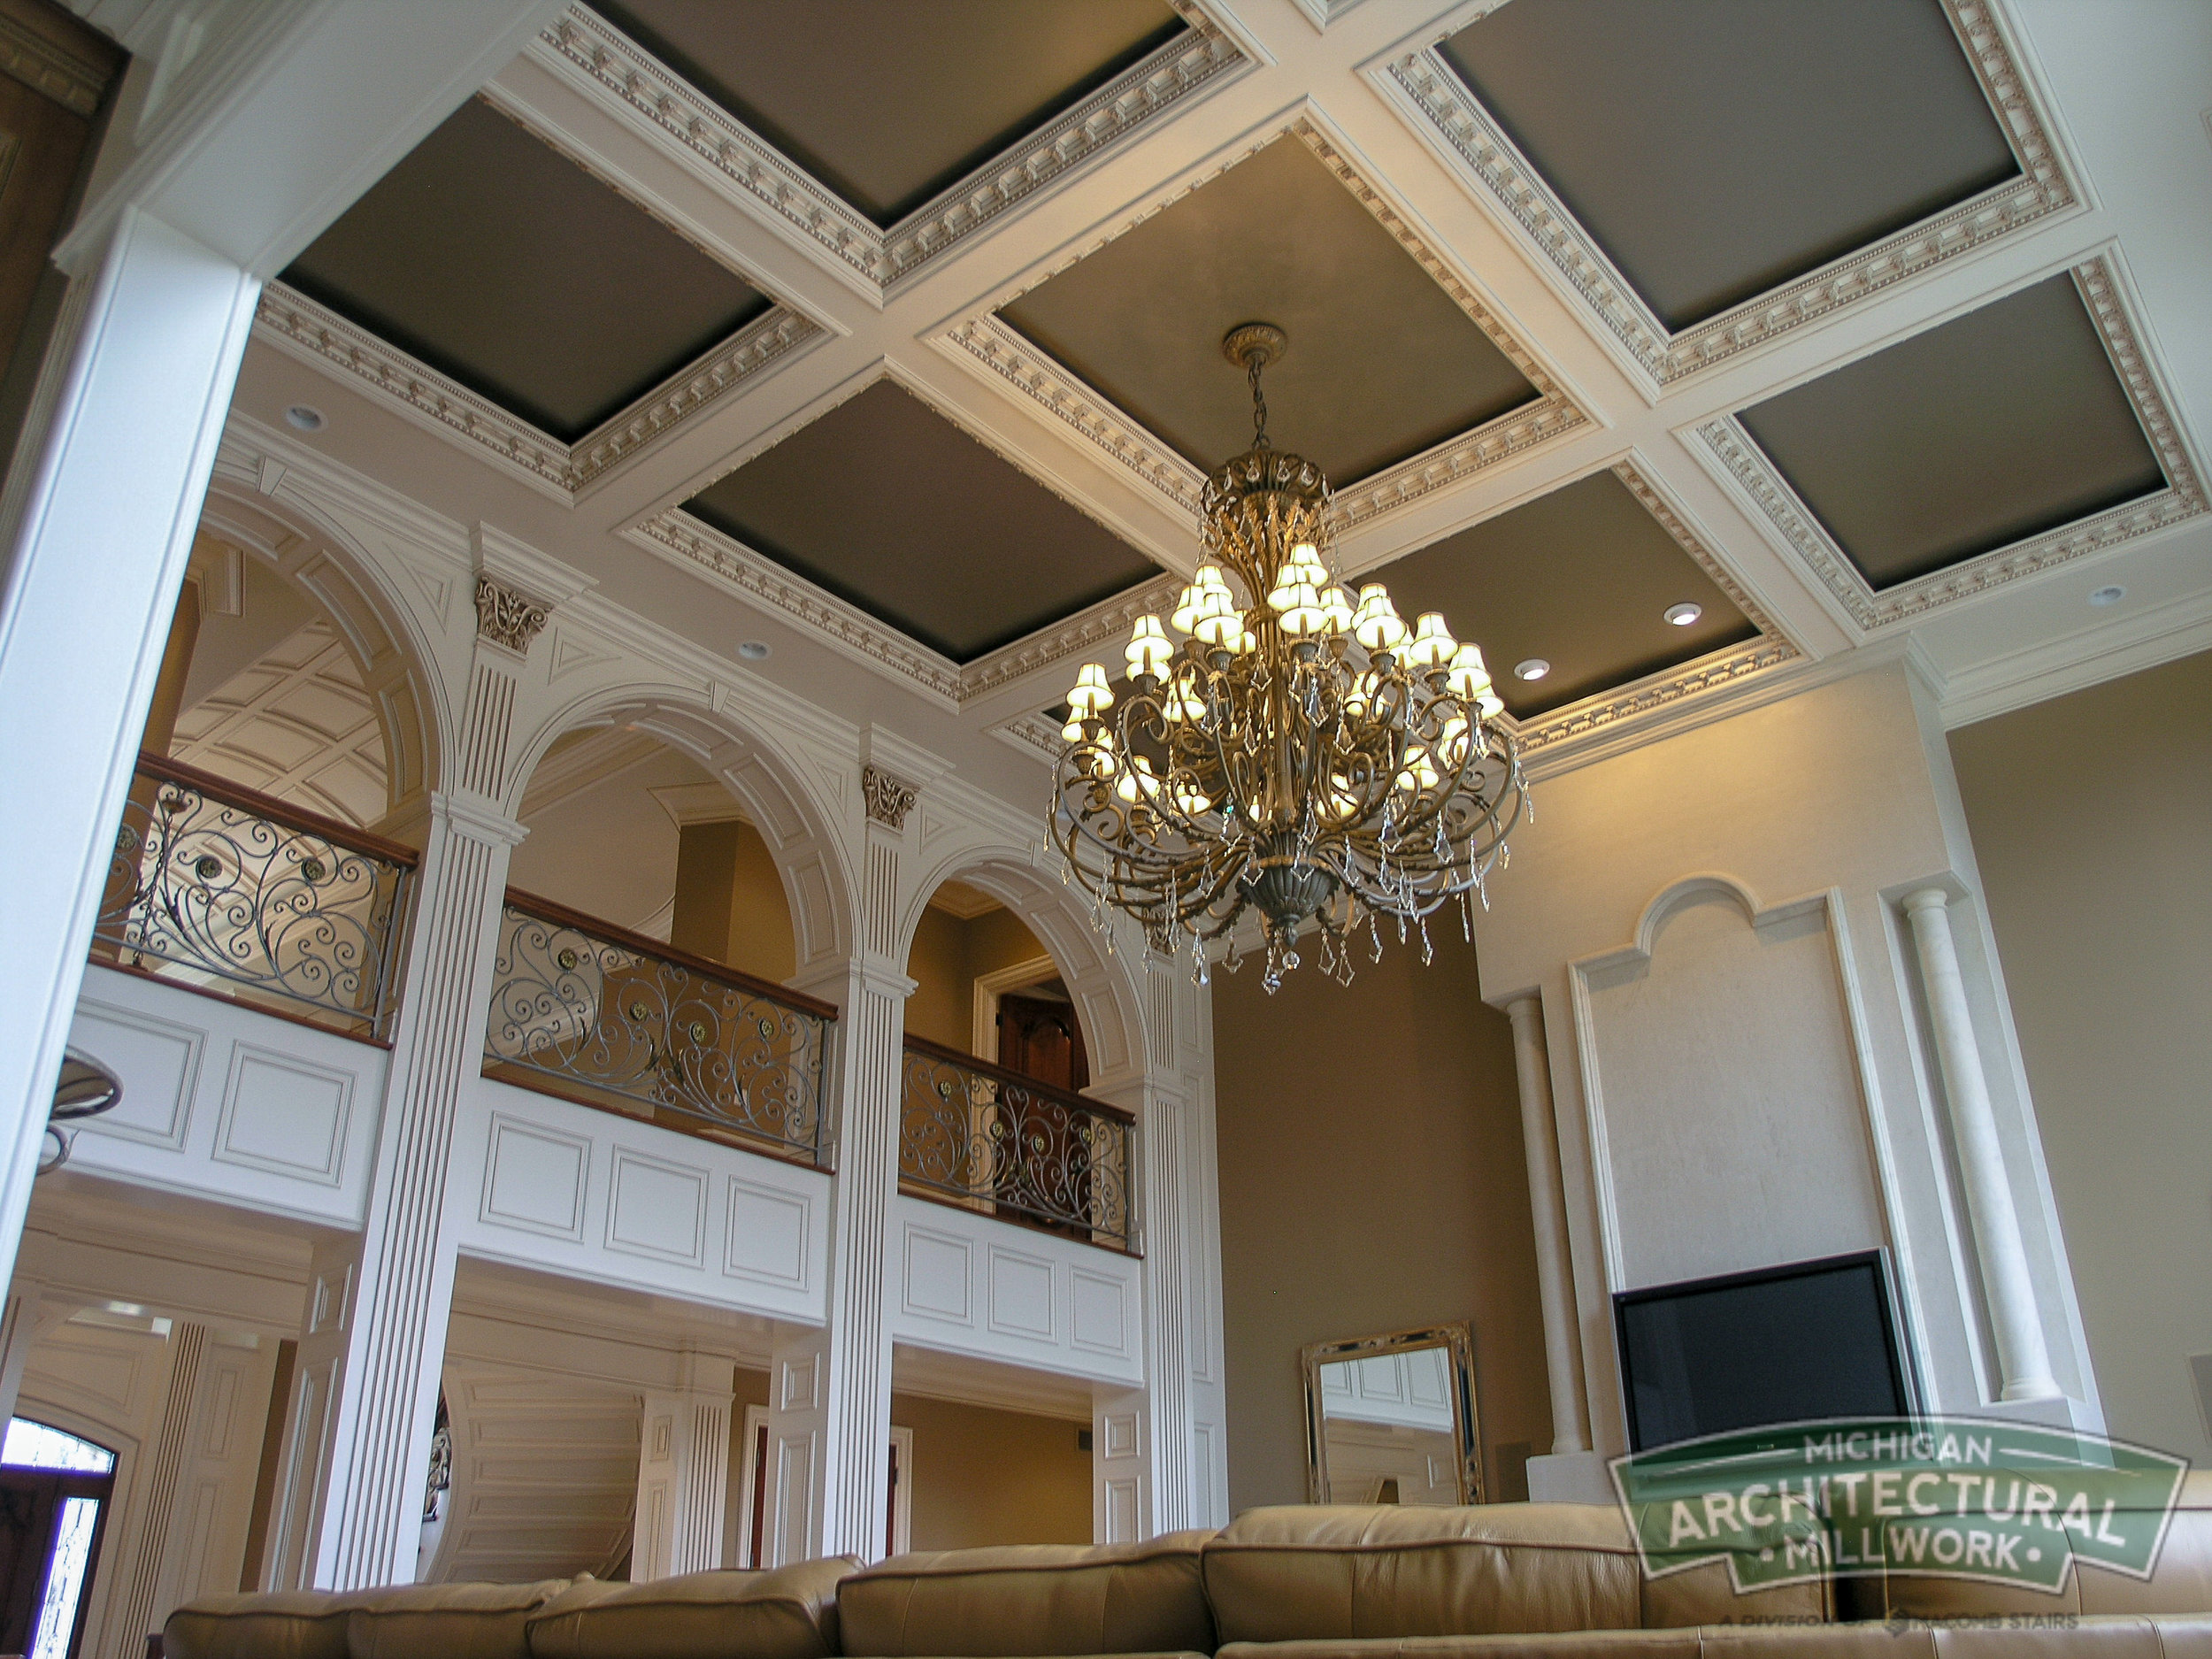 Michigan Architectural Millwork- Moulding and Millwork Photo-91.jpg